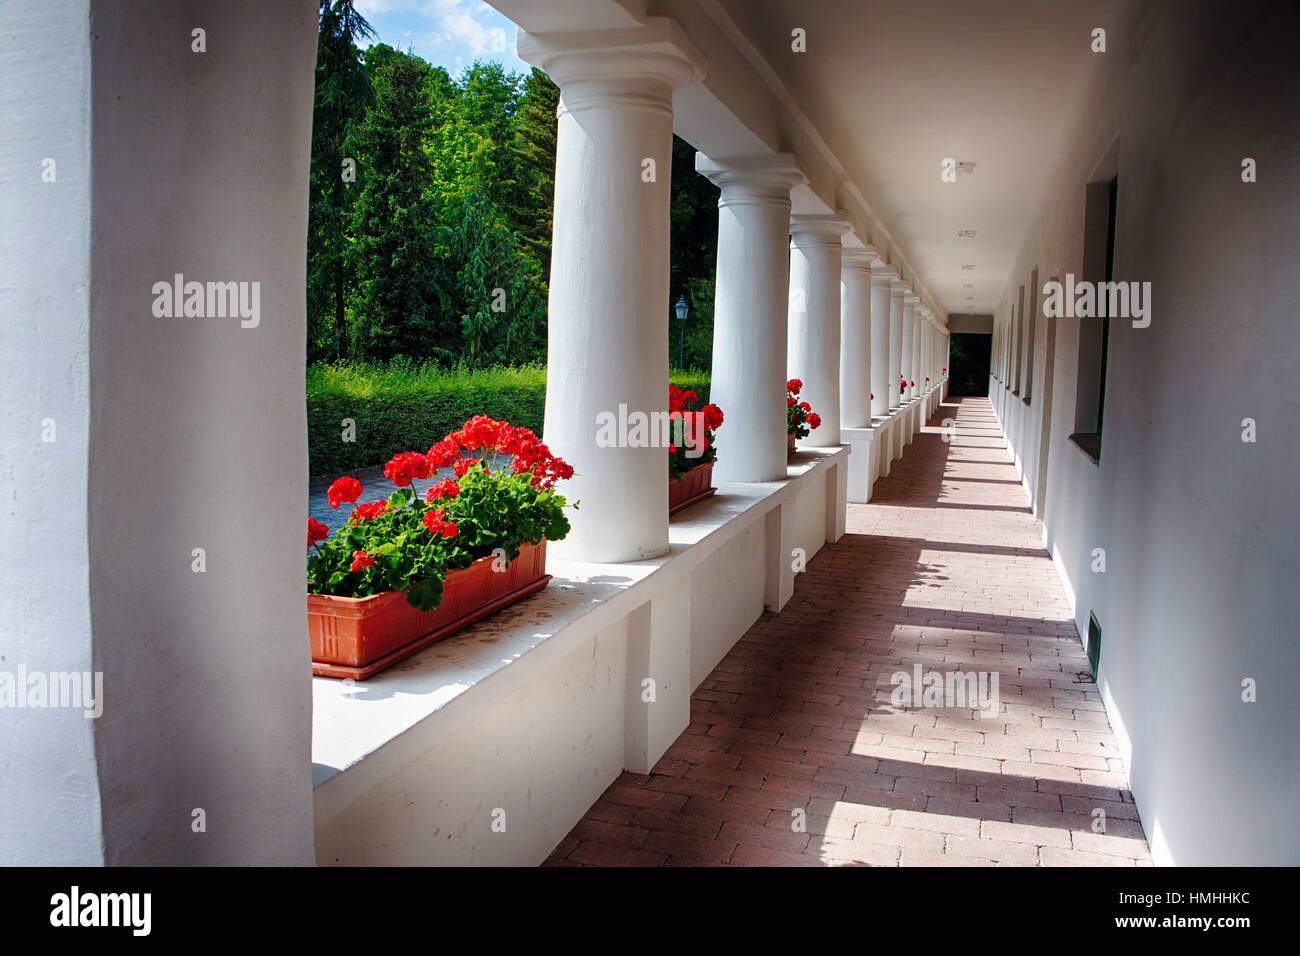 View of a Traditional Hungarian Country House with a Veranda, Vacratot, Hungary - Stock Image